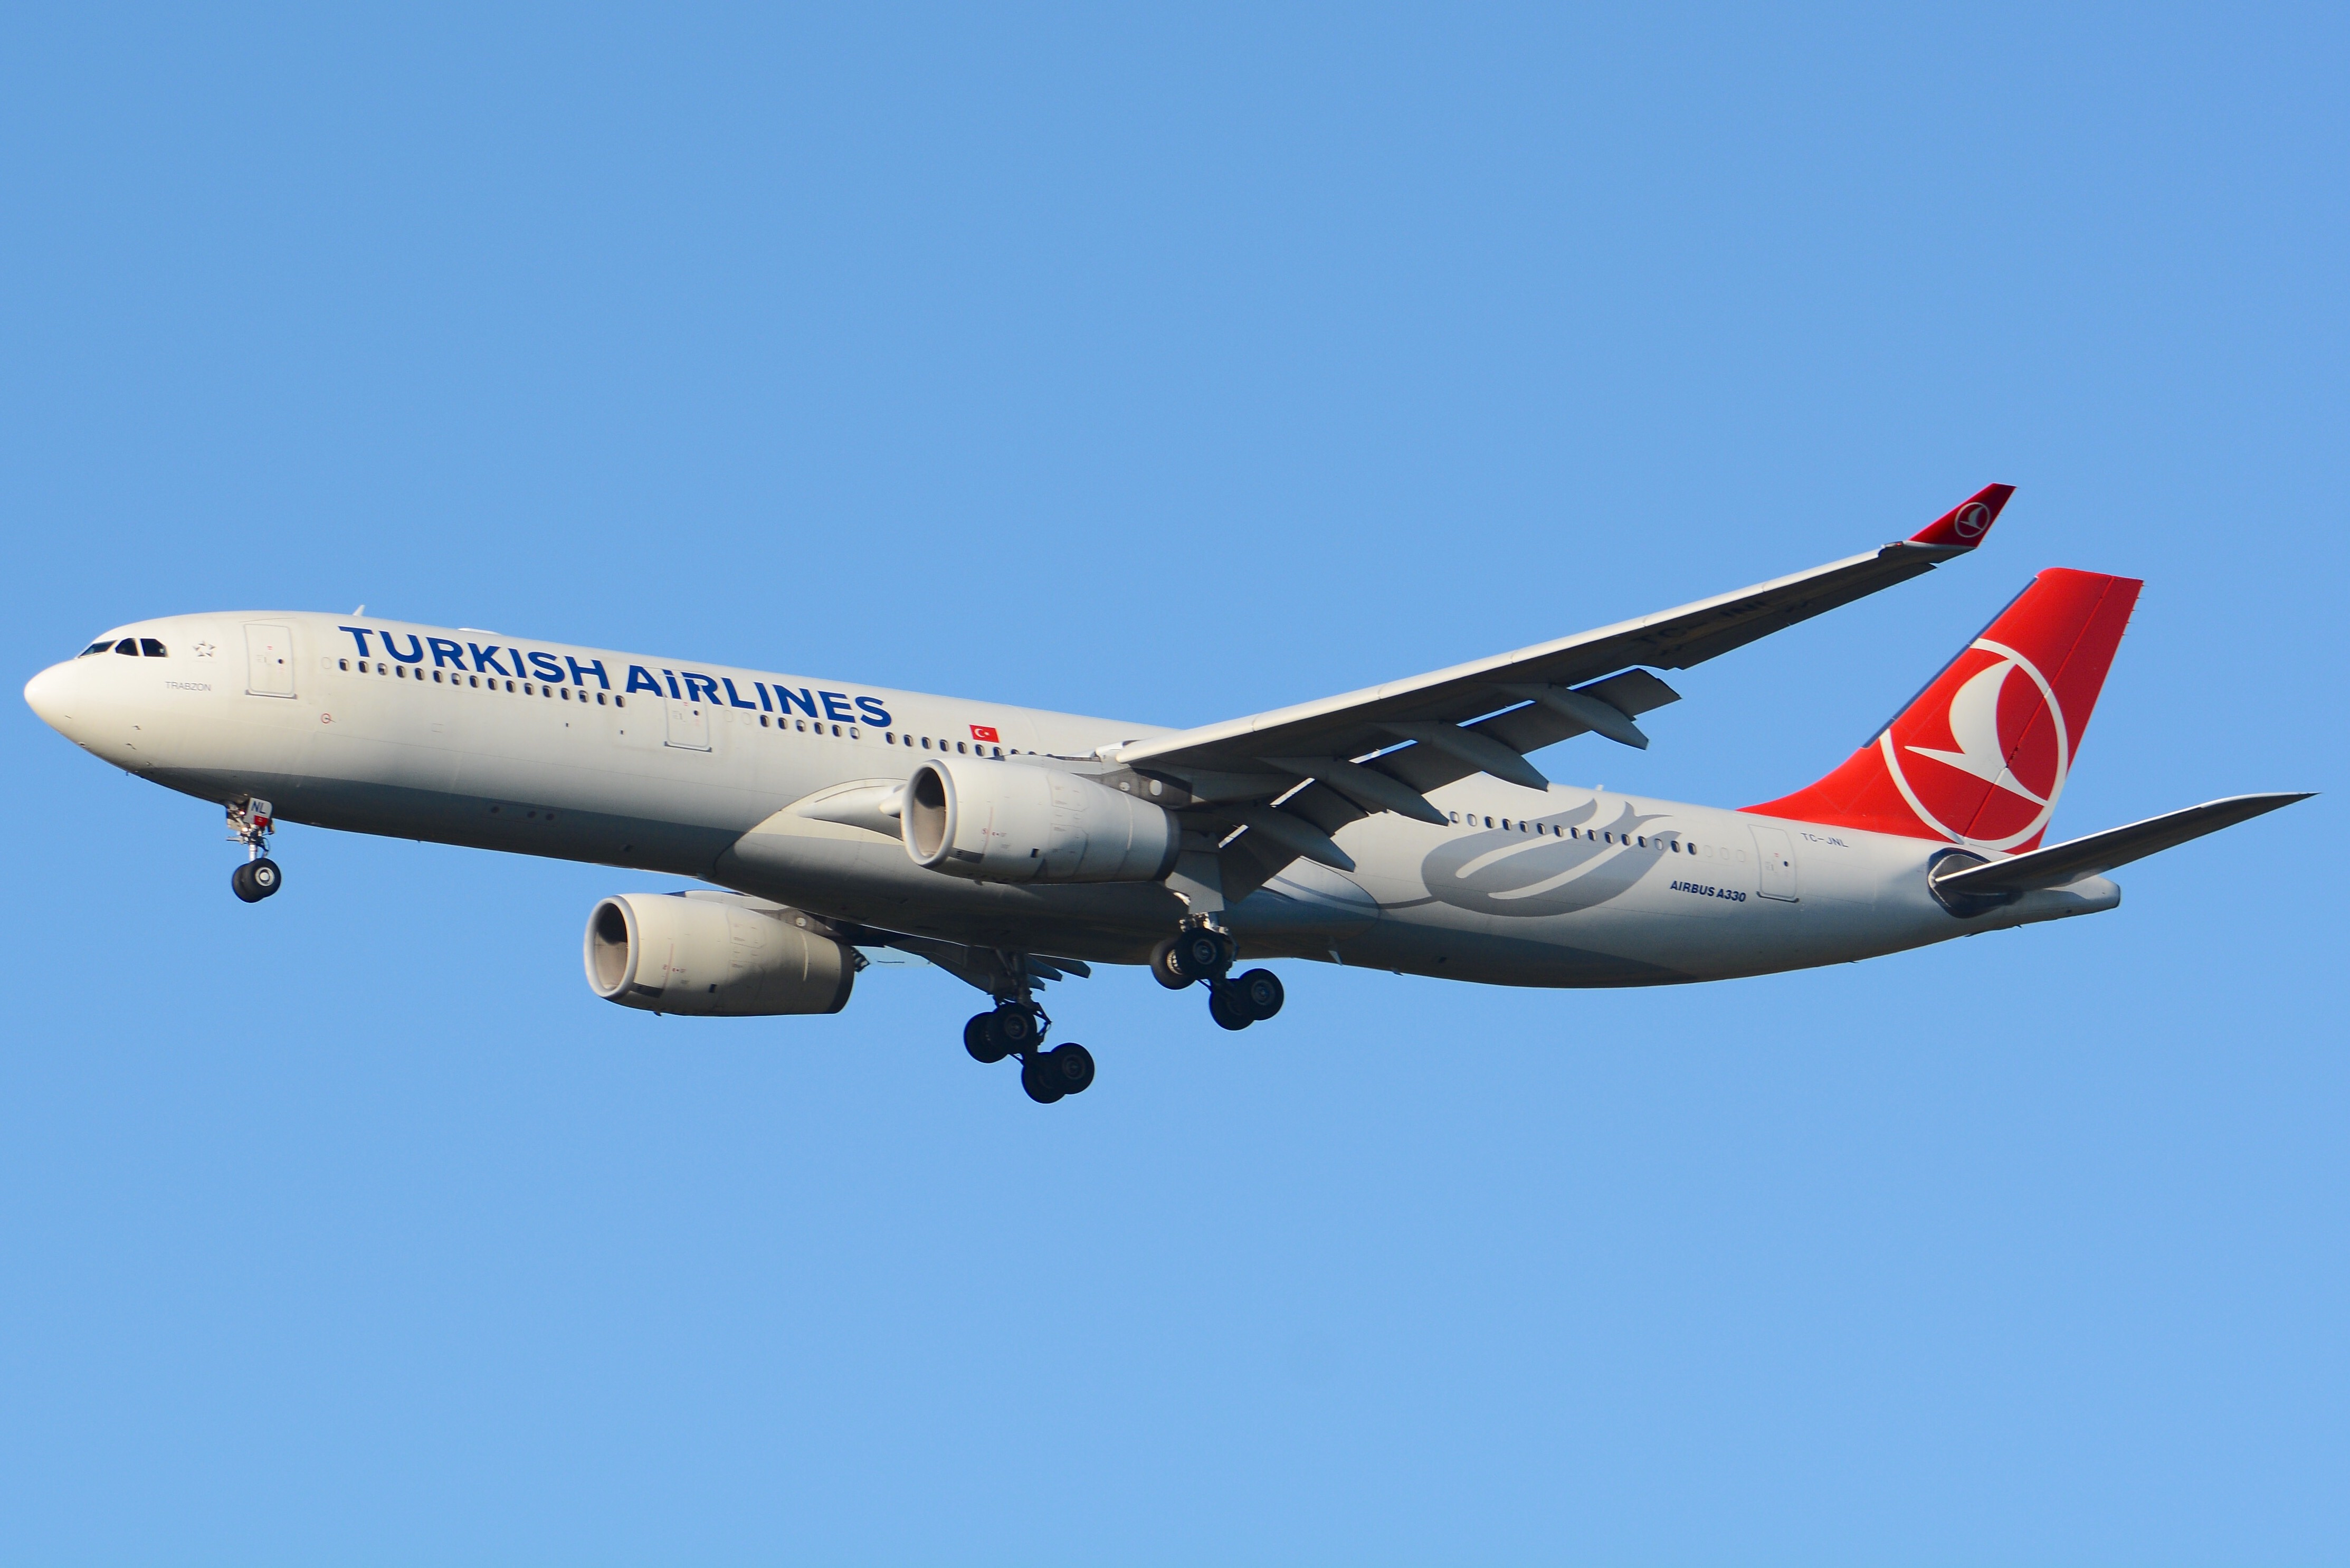 Airbus A330 - Wikipedia